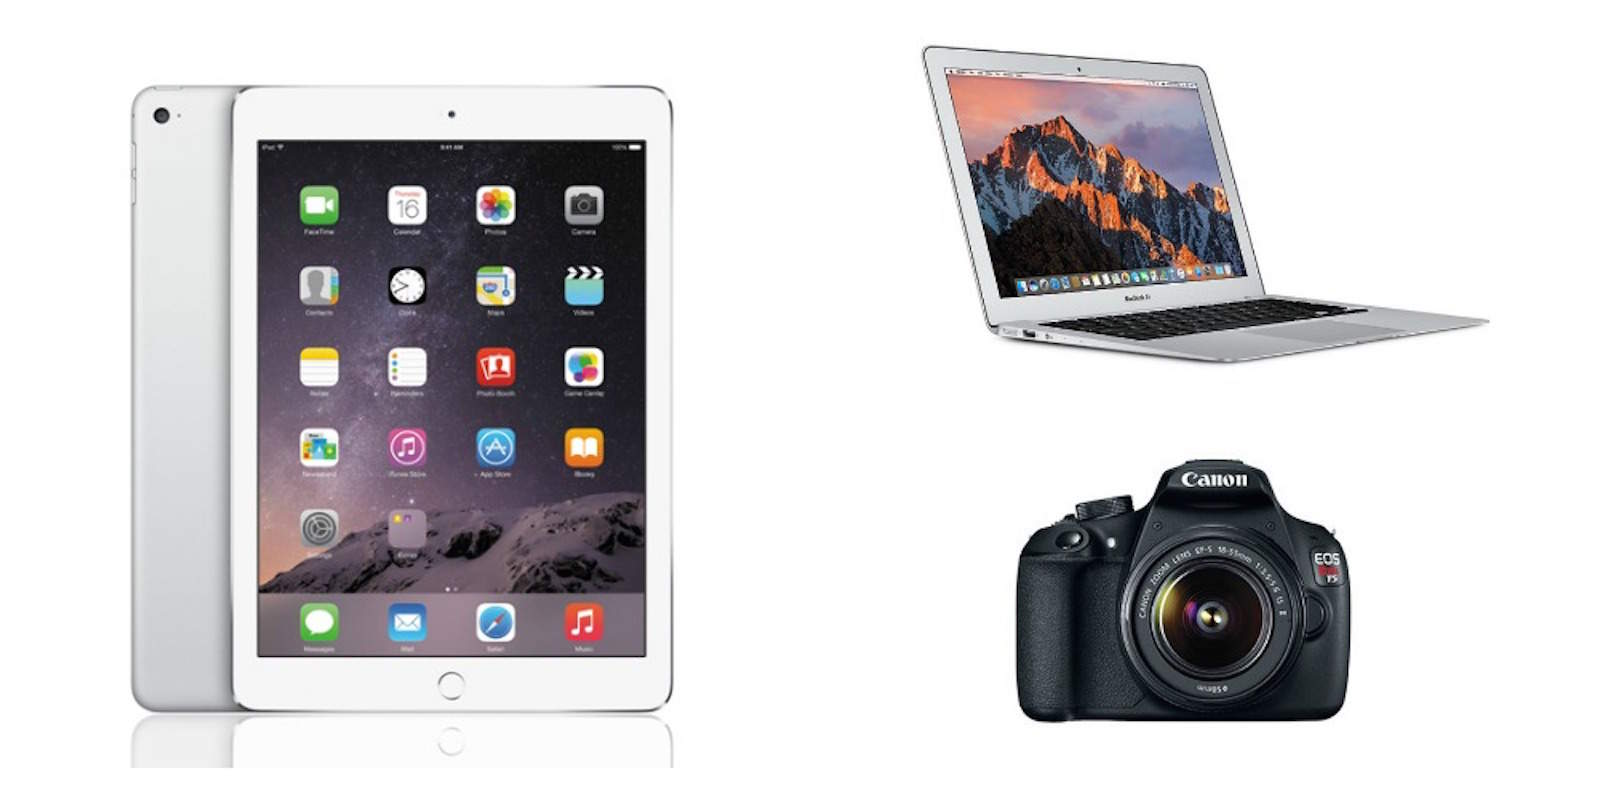 Take advantage of great deals on MacBook Air, iPad 2, and much more.